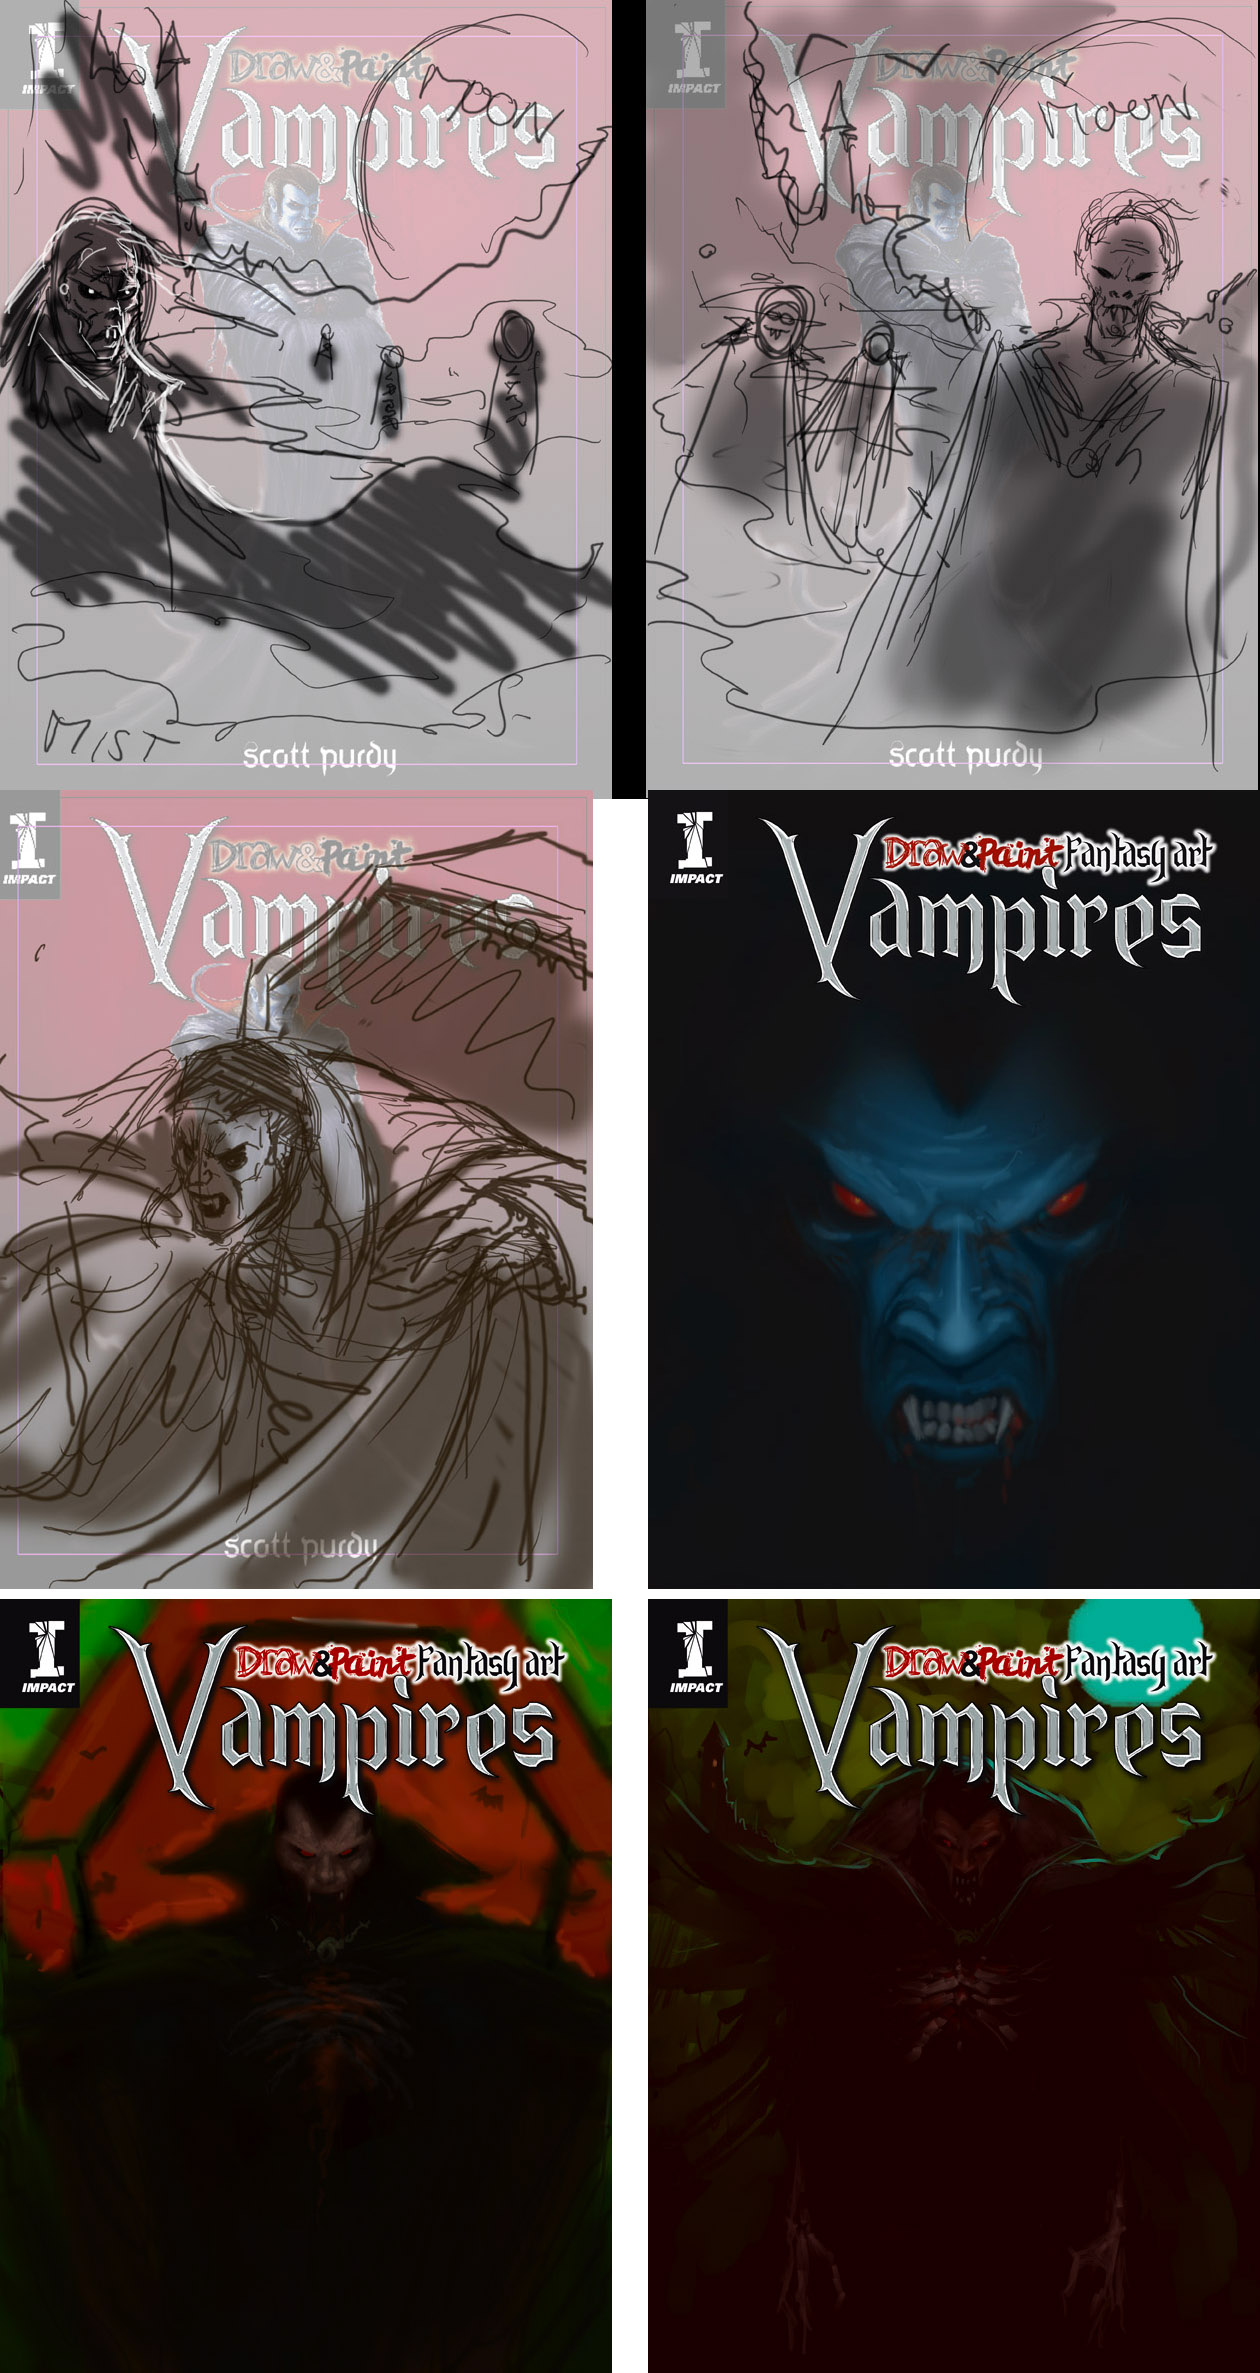 Vampire Book Cover Art ~ Vampire book cover ideas by scottpurdy on deviantart